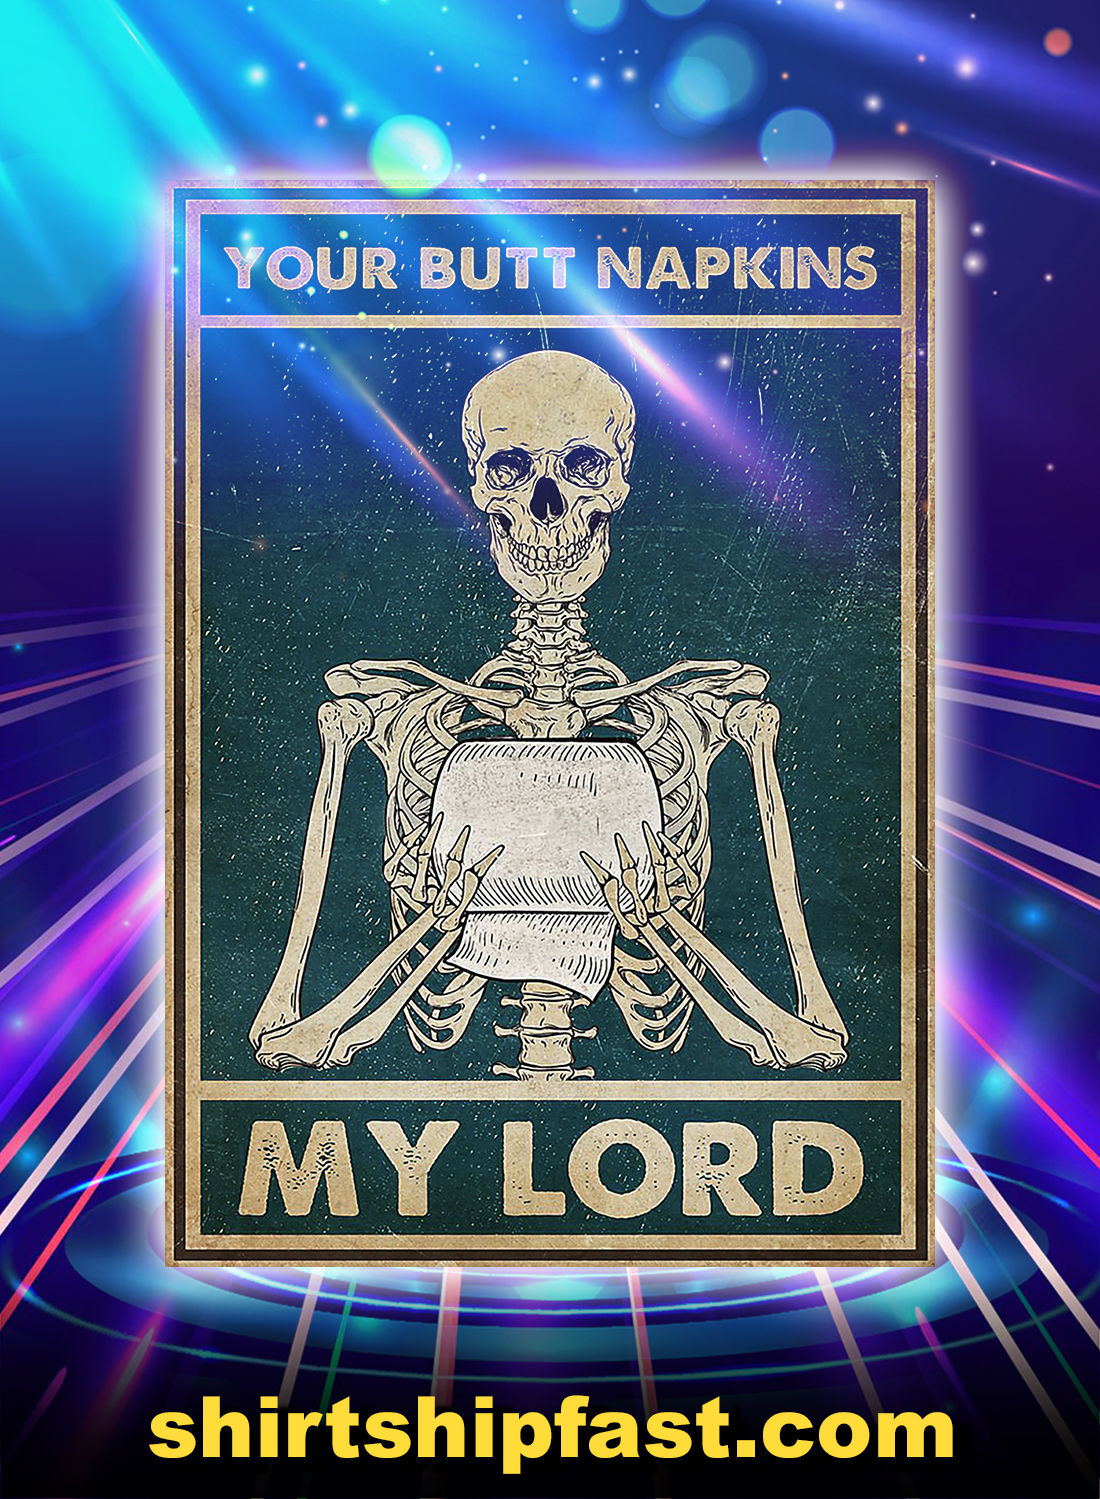 Bathroom skeleton your butt napkins my lord poster - A4